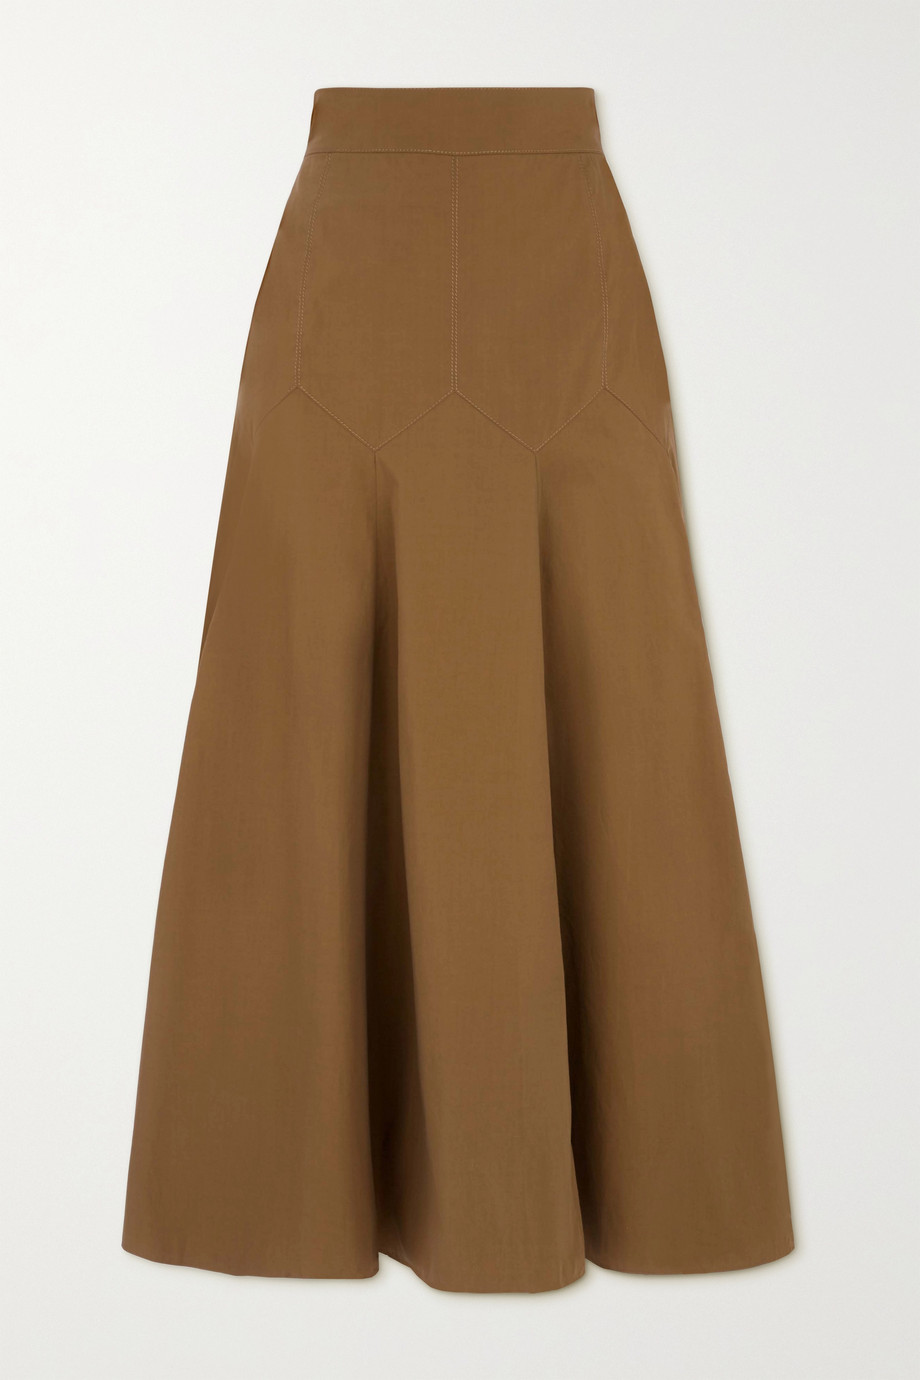 Three Graces London Aria cotton-poplin midi skirt